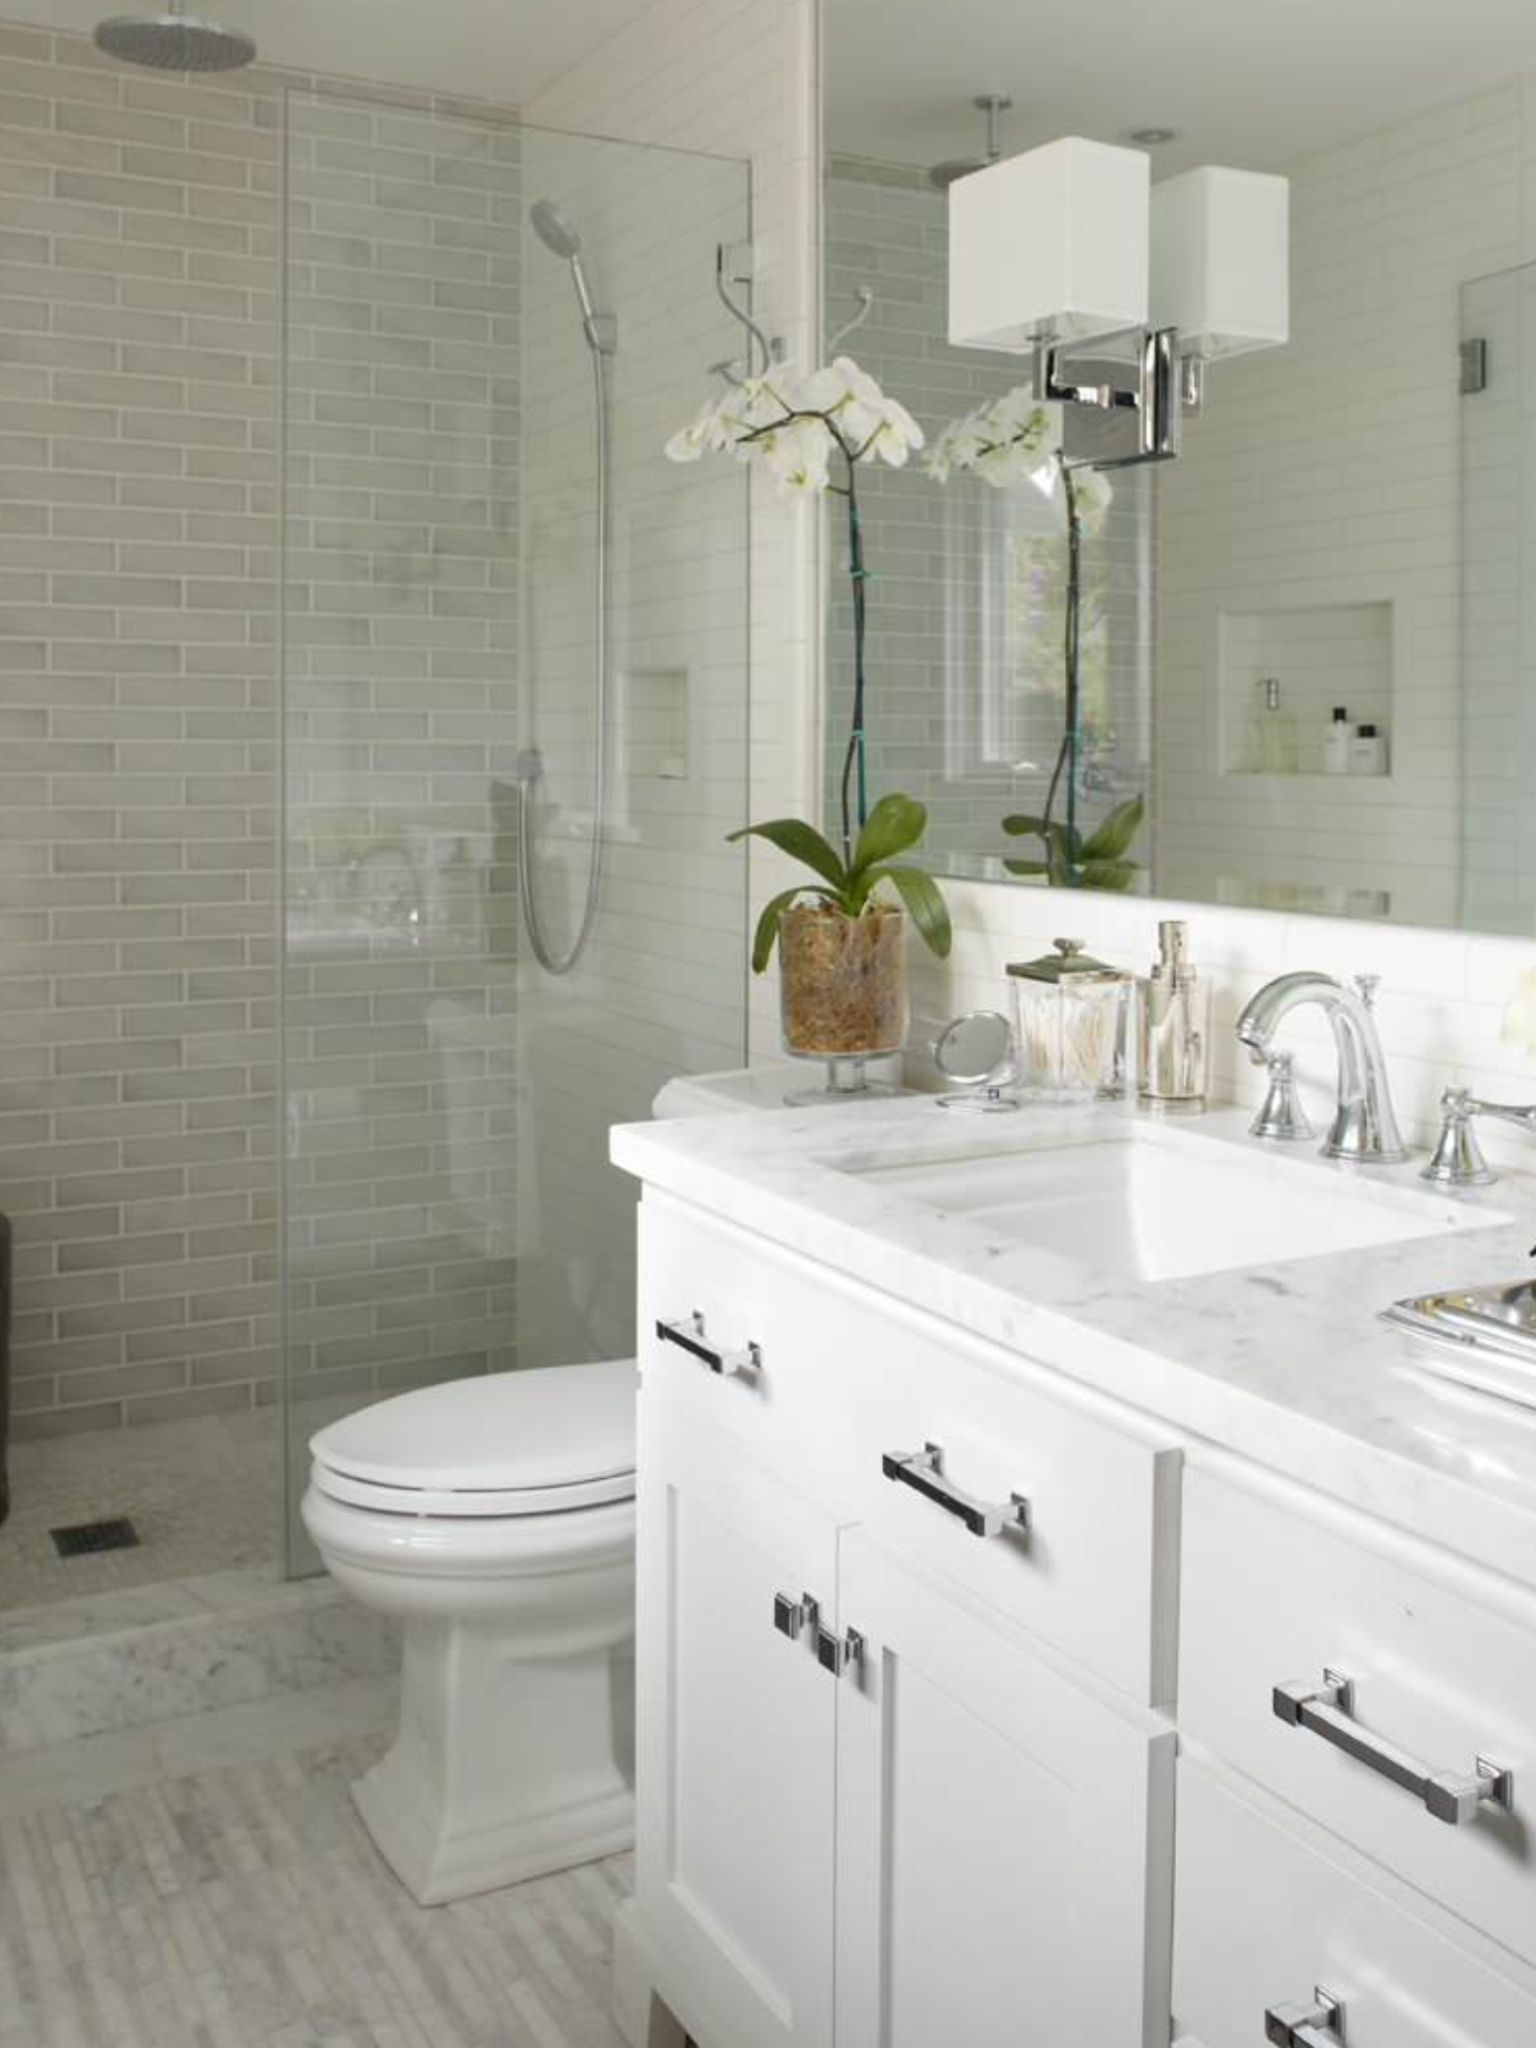 Pin By Becky Manicone On Housequake Bathroom Design Small Small